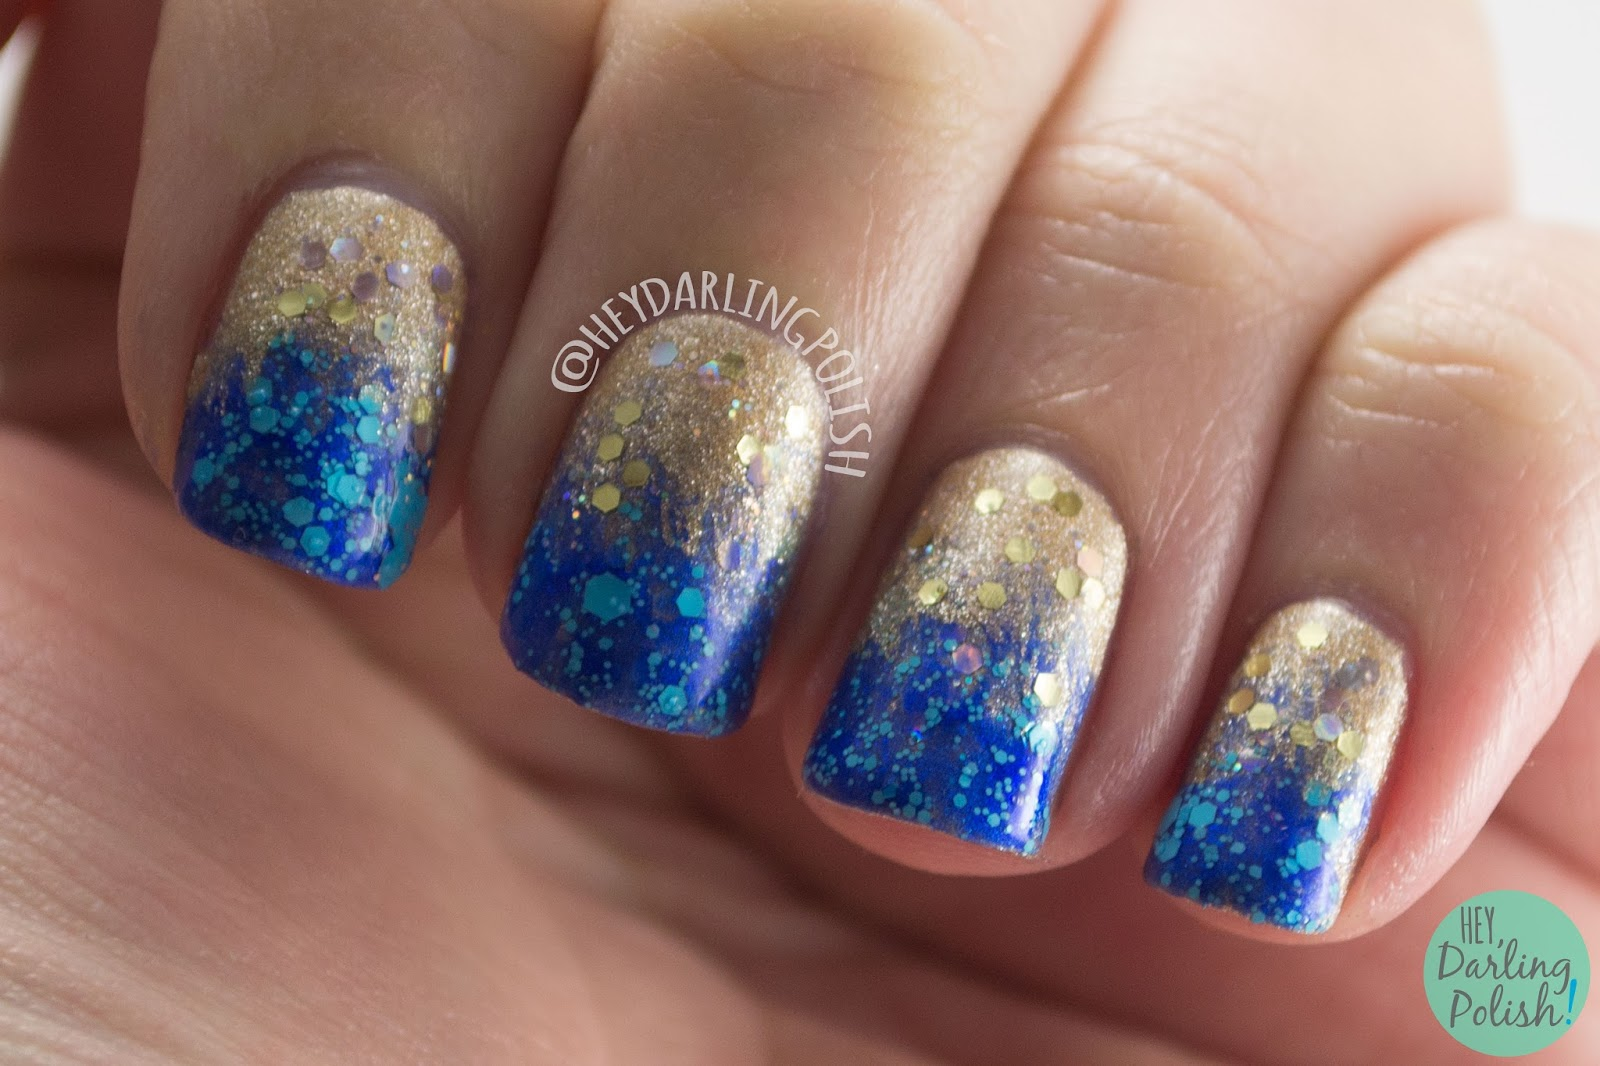 Hey, Darling Polish!: December 2014